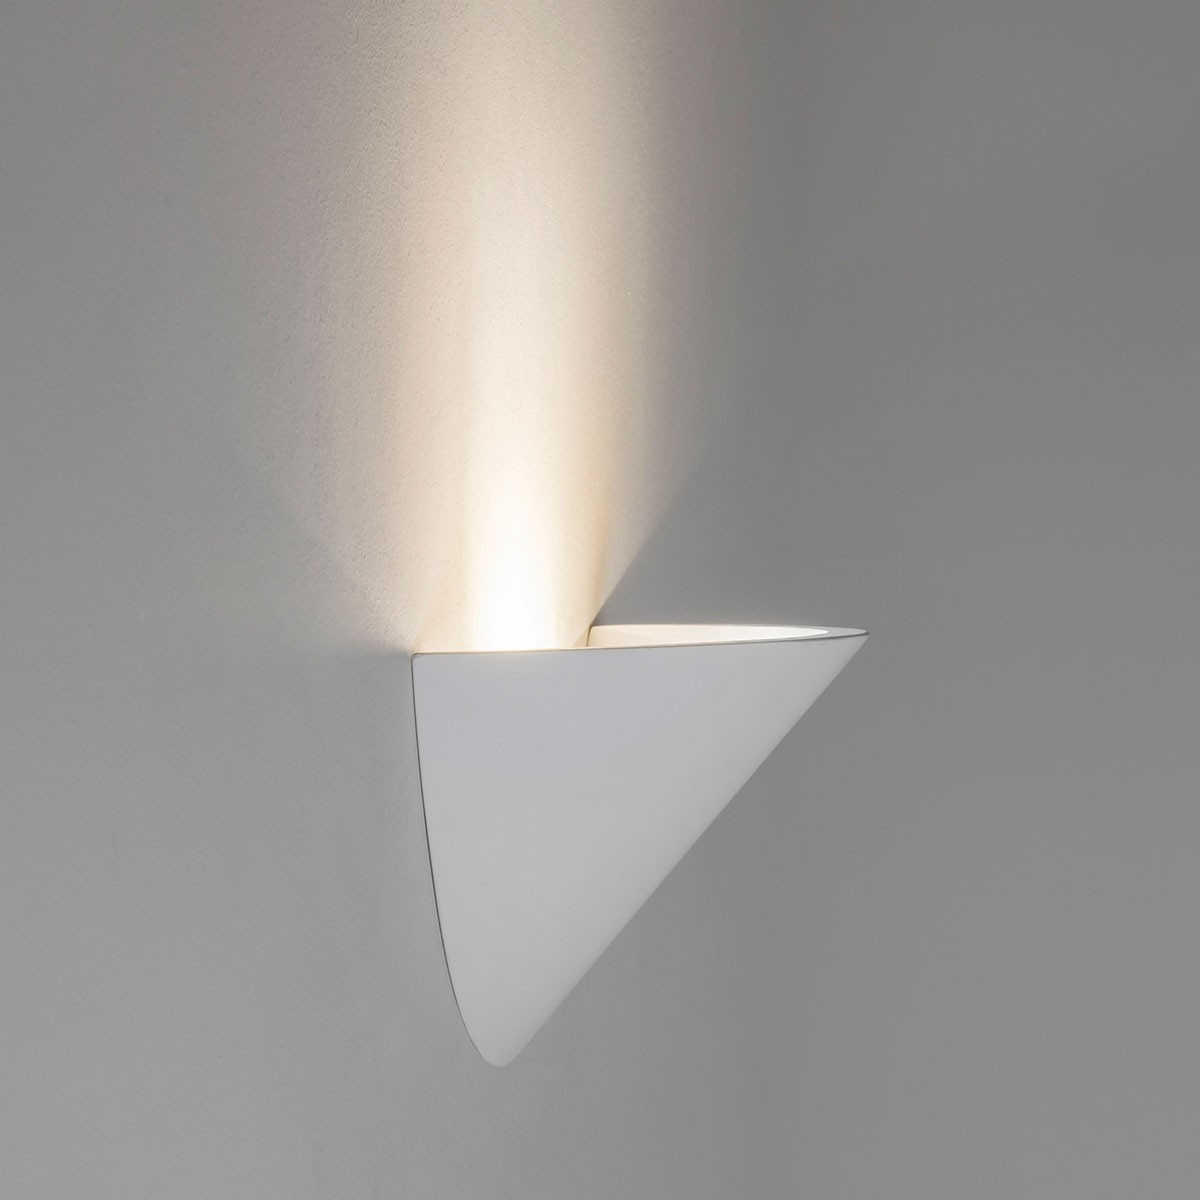 Astro Kastoria Plaster Wall Light at UK Electrical Supplies.